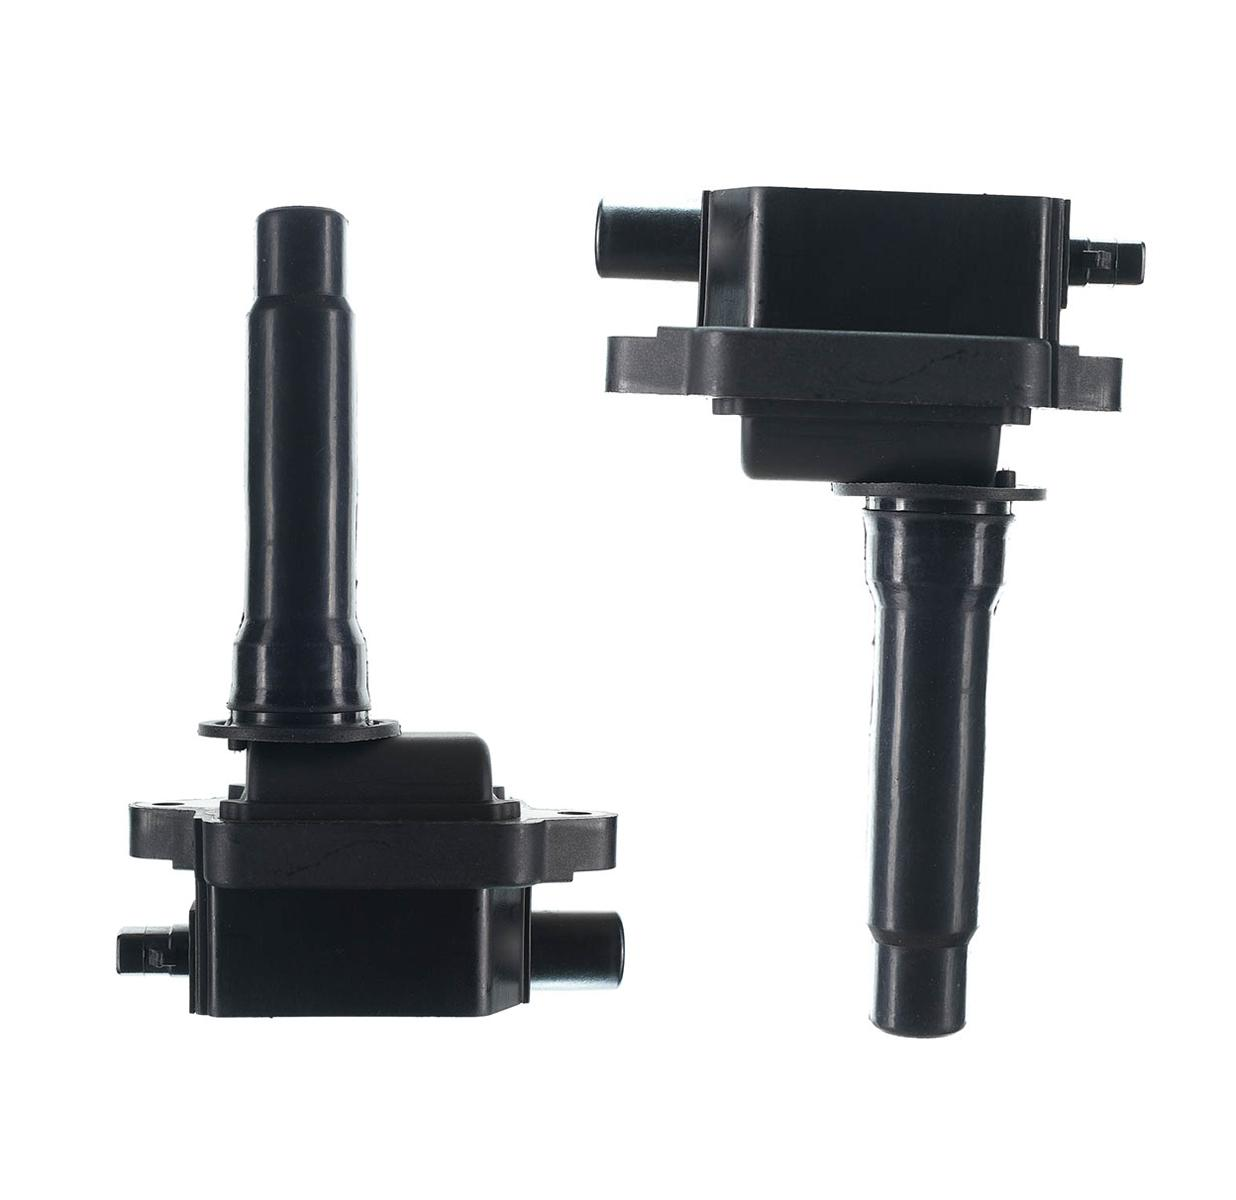 coil pack 2x Ignition Coil Pack for Kia Sportage 1995 1996-2002 I4 2 0L  88921371 0K01318100 UF283 DOHC Engine One Year Quality Warranty